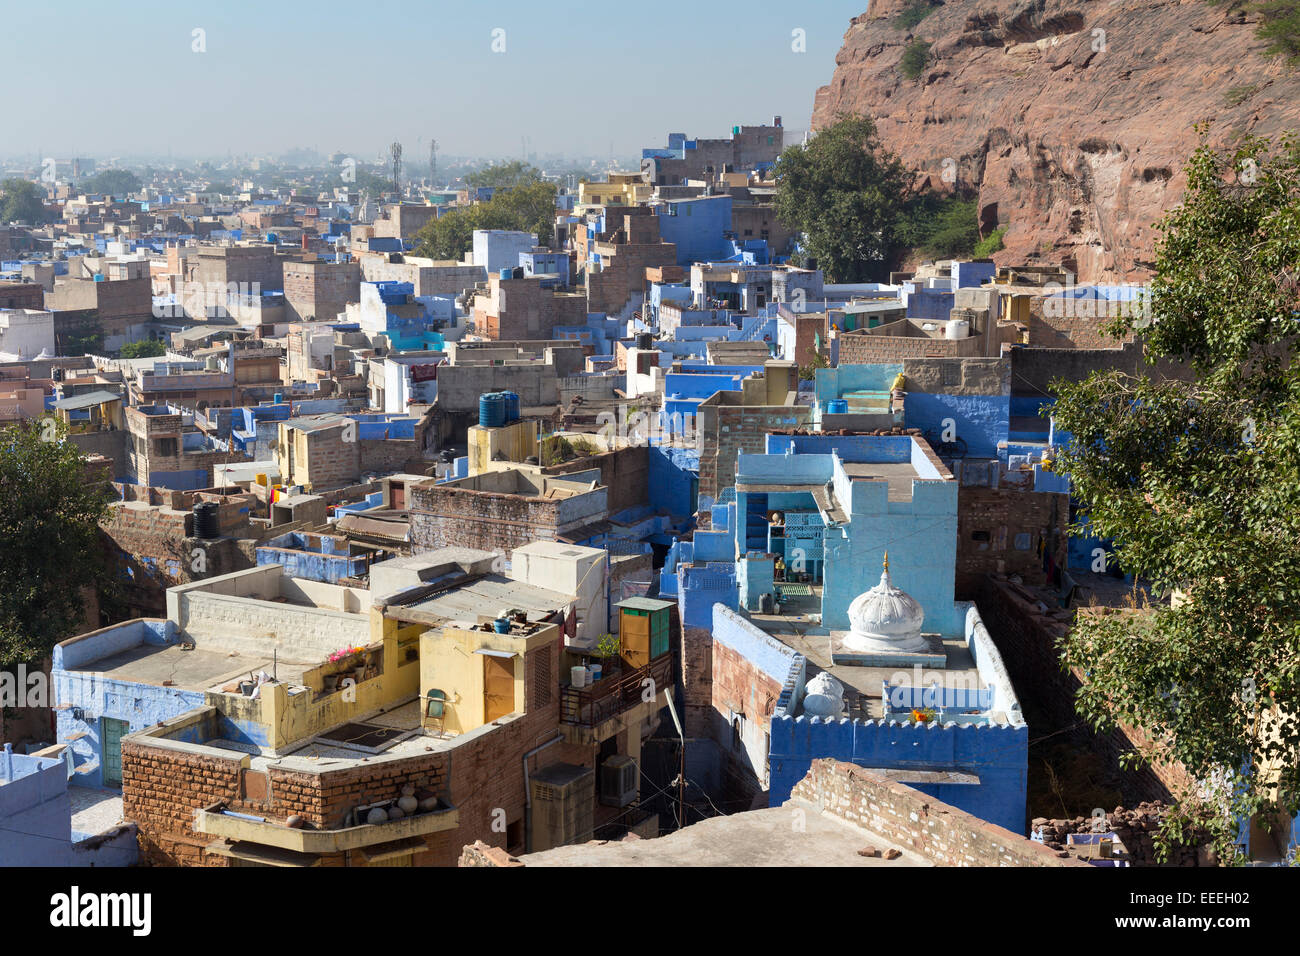 India, Rajasthan, Jodhpur, blue painted houses in the old city - Stock Image